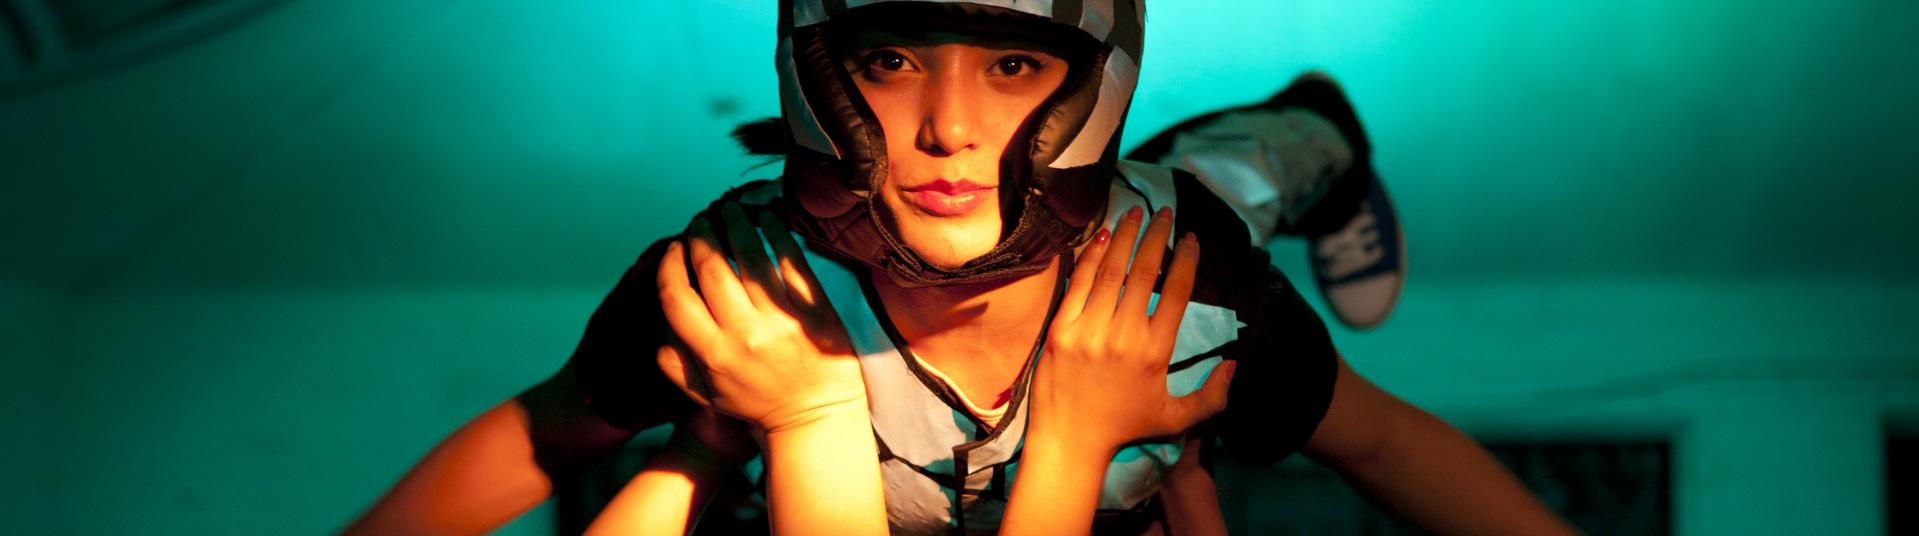 A dancer in a helmet is held up by other dancers